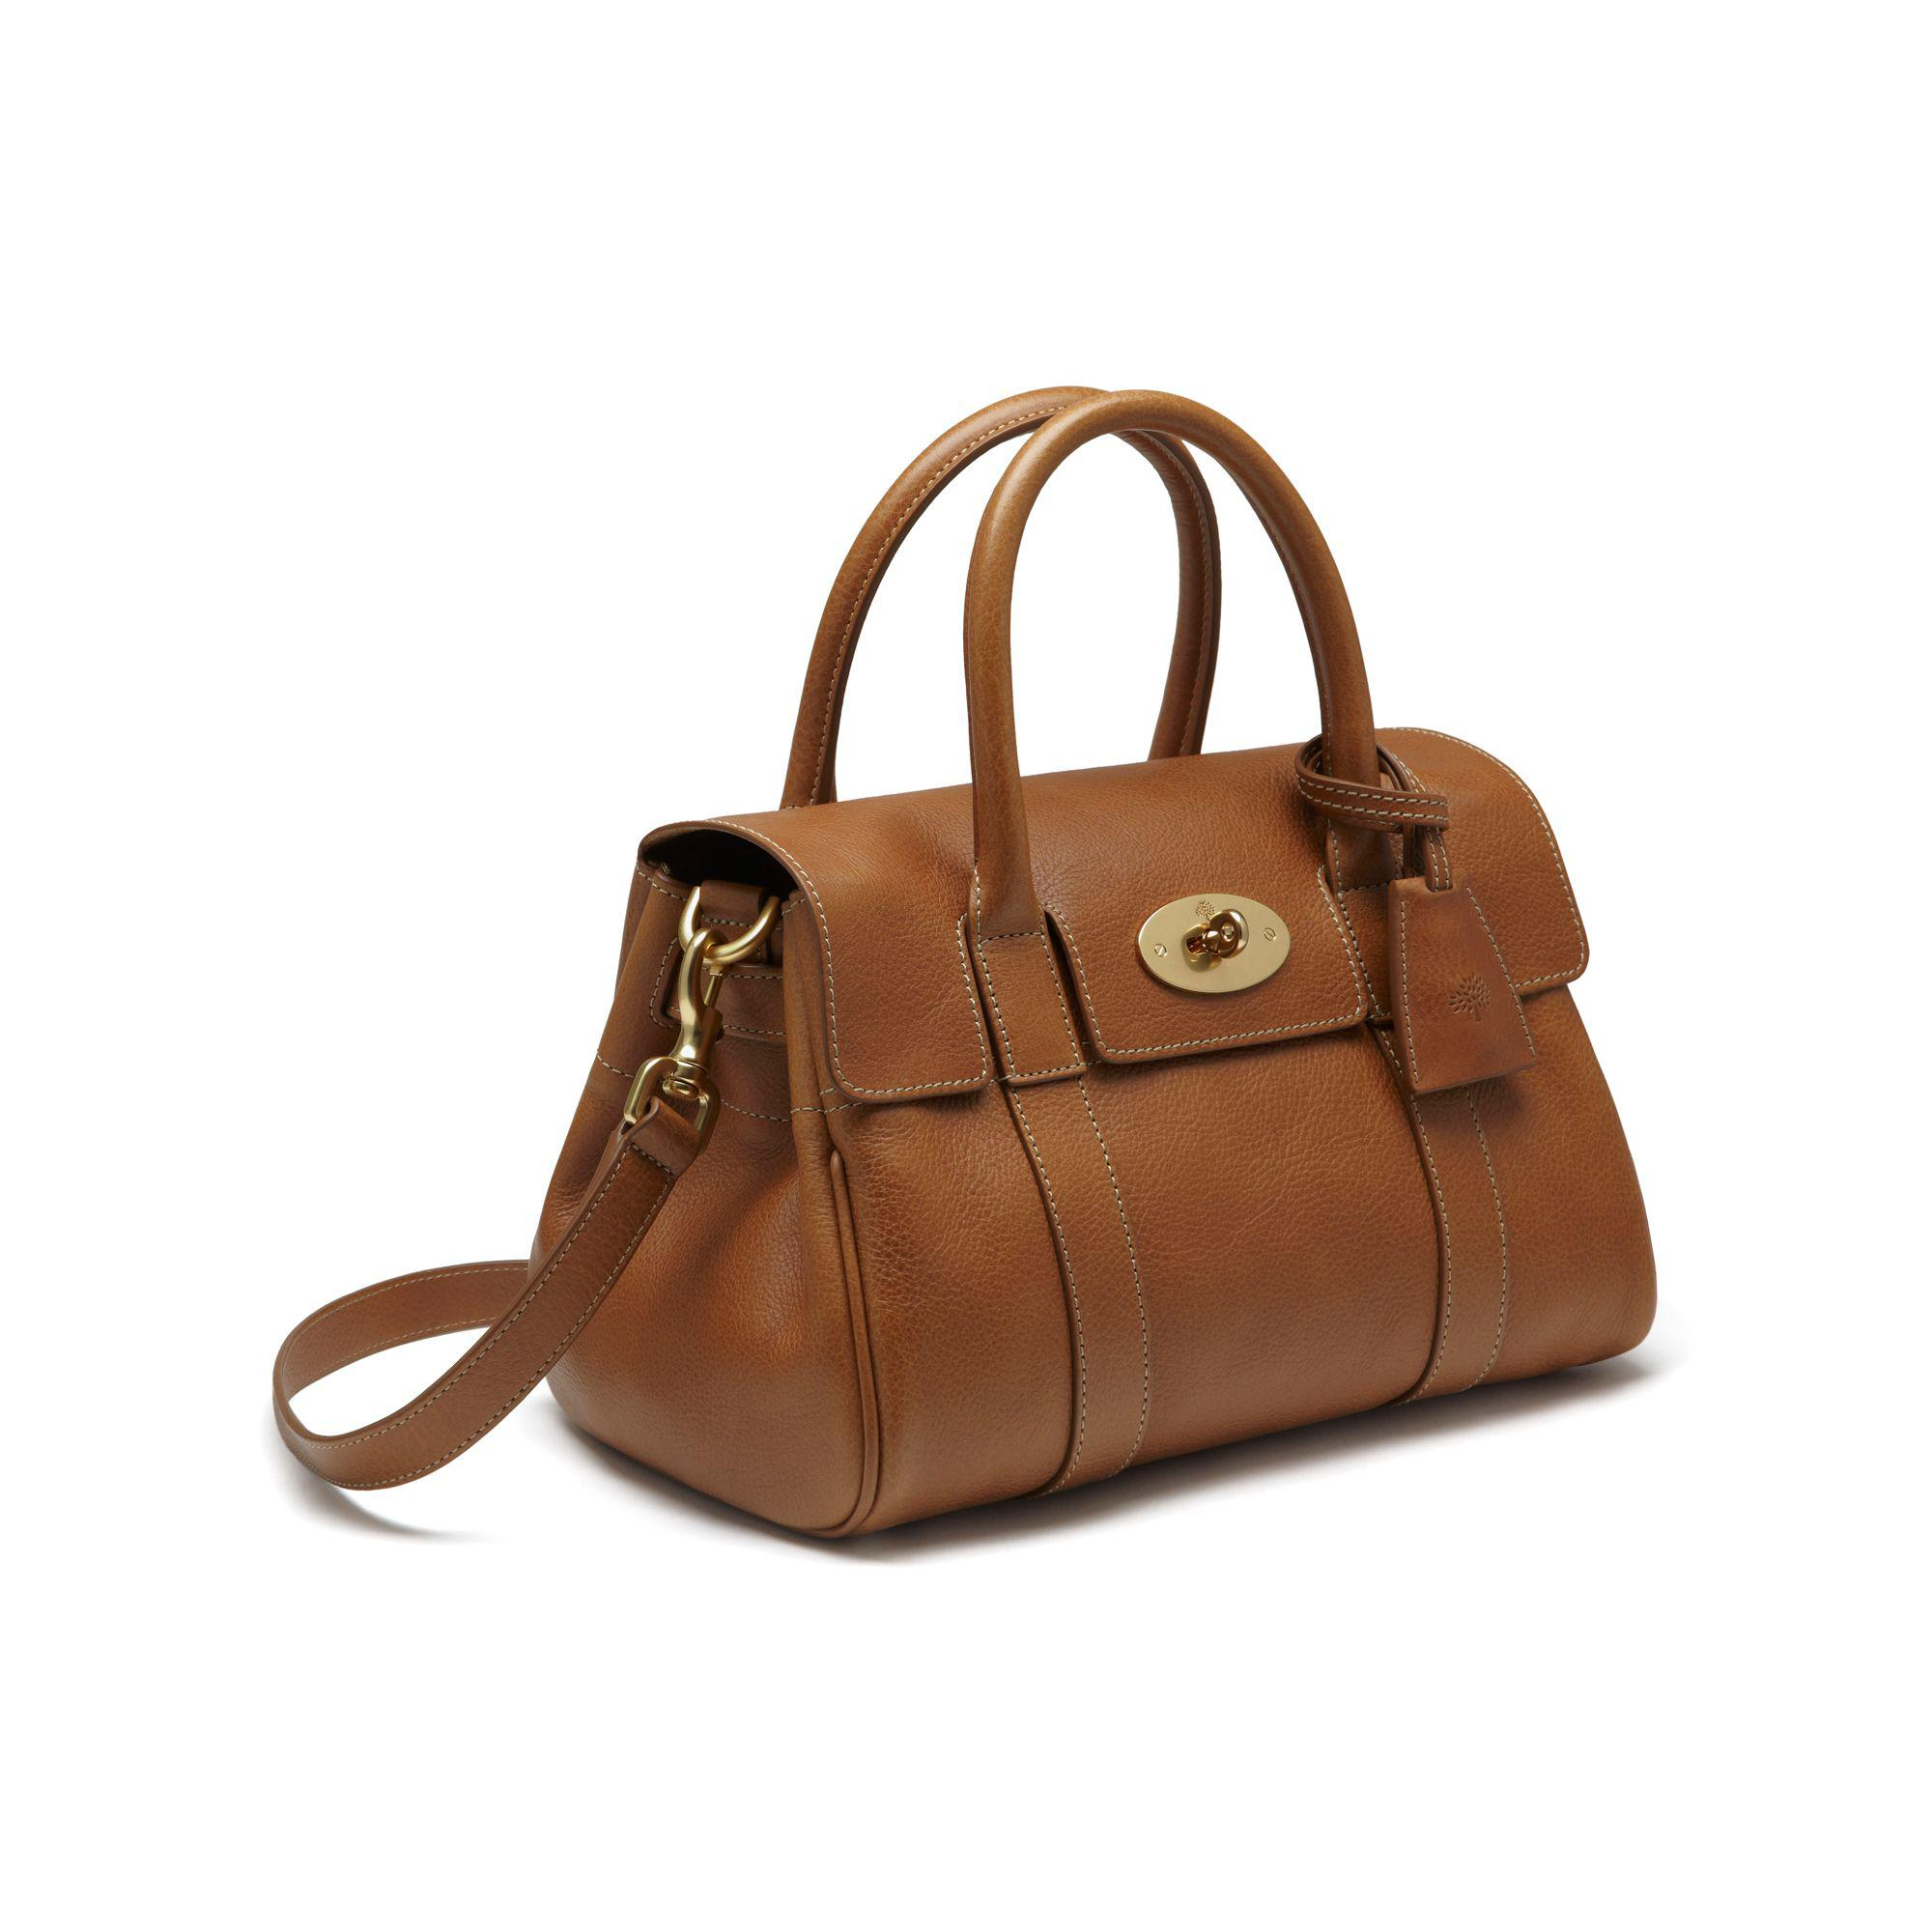 38b4fd0608 Lyst - Mulberry Small Bayswater Leather Satchel in Brown